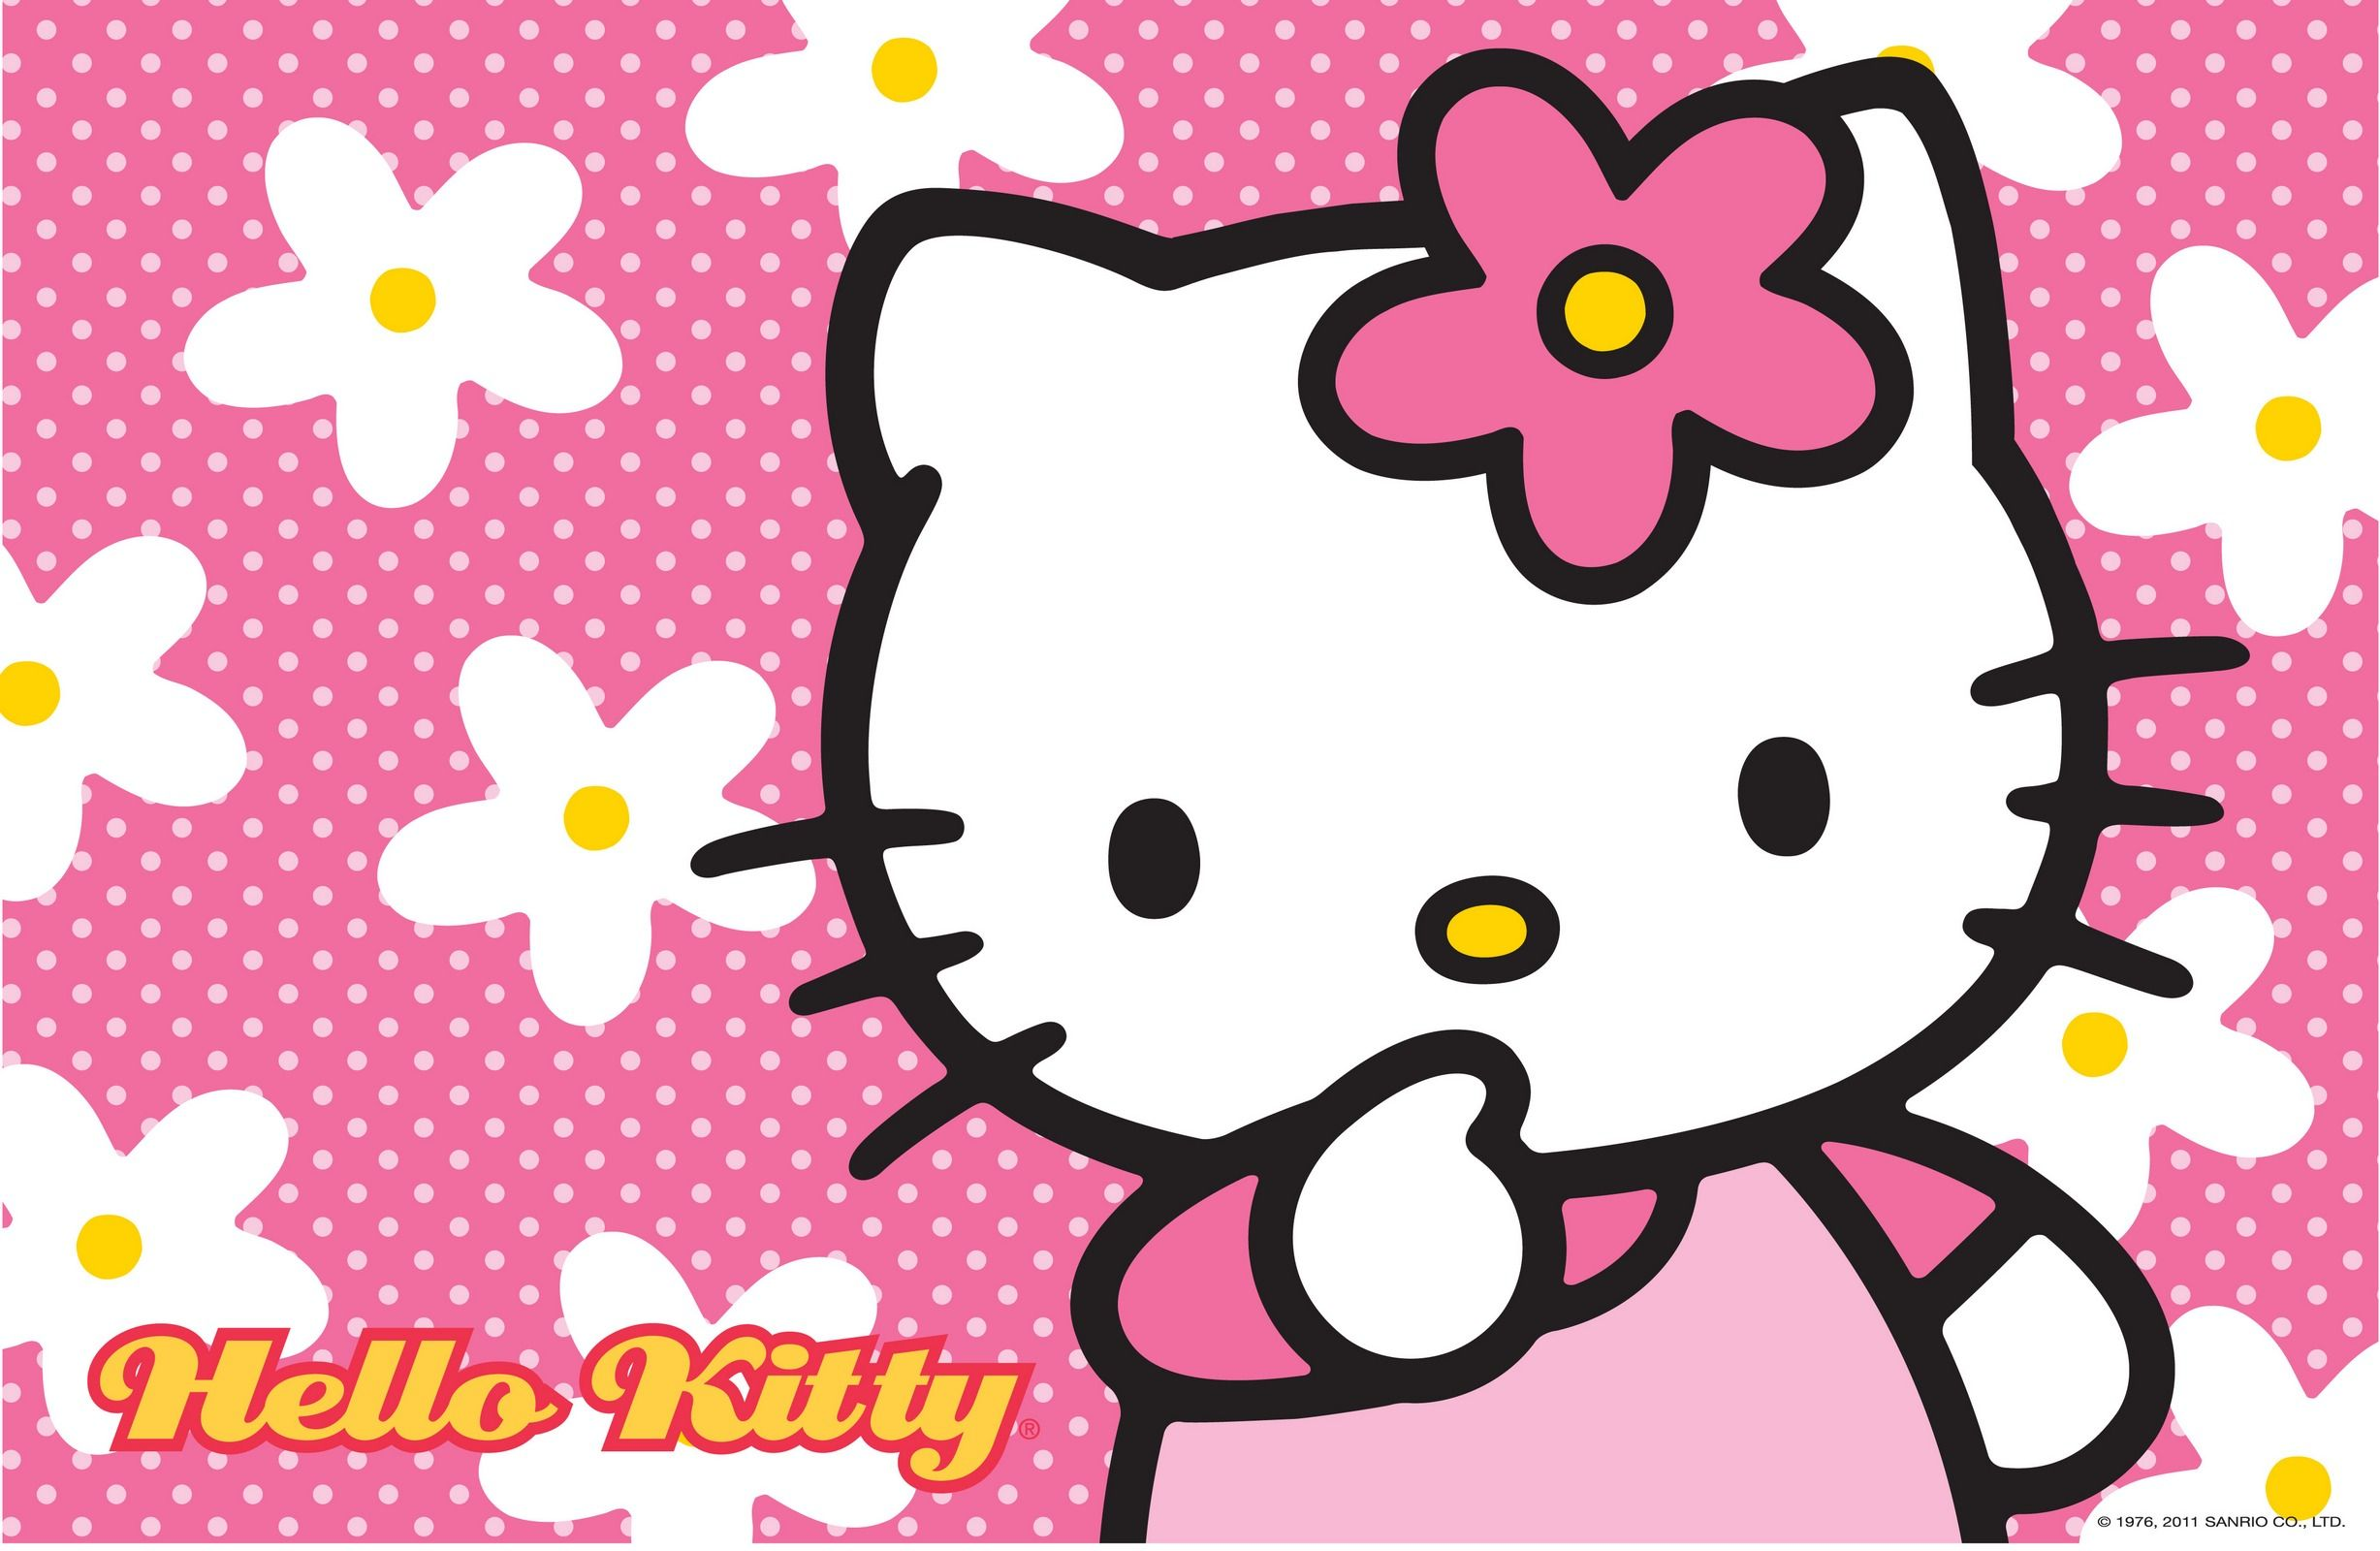 Hello Kitty Wallpaper with Floral Pink Background  Hello kitty